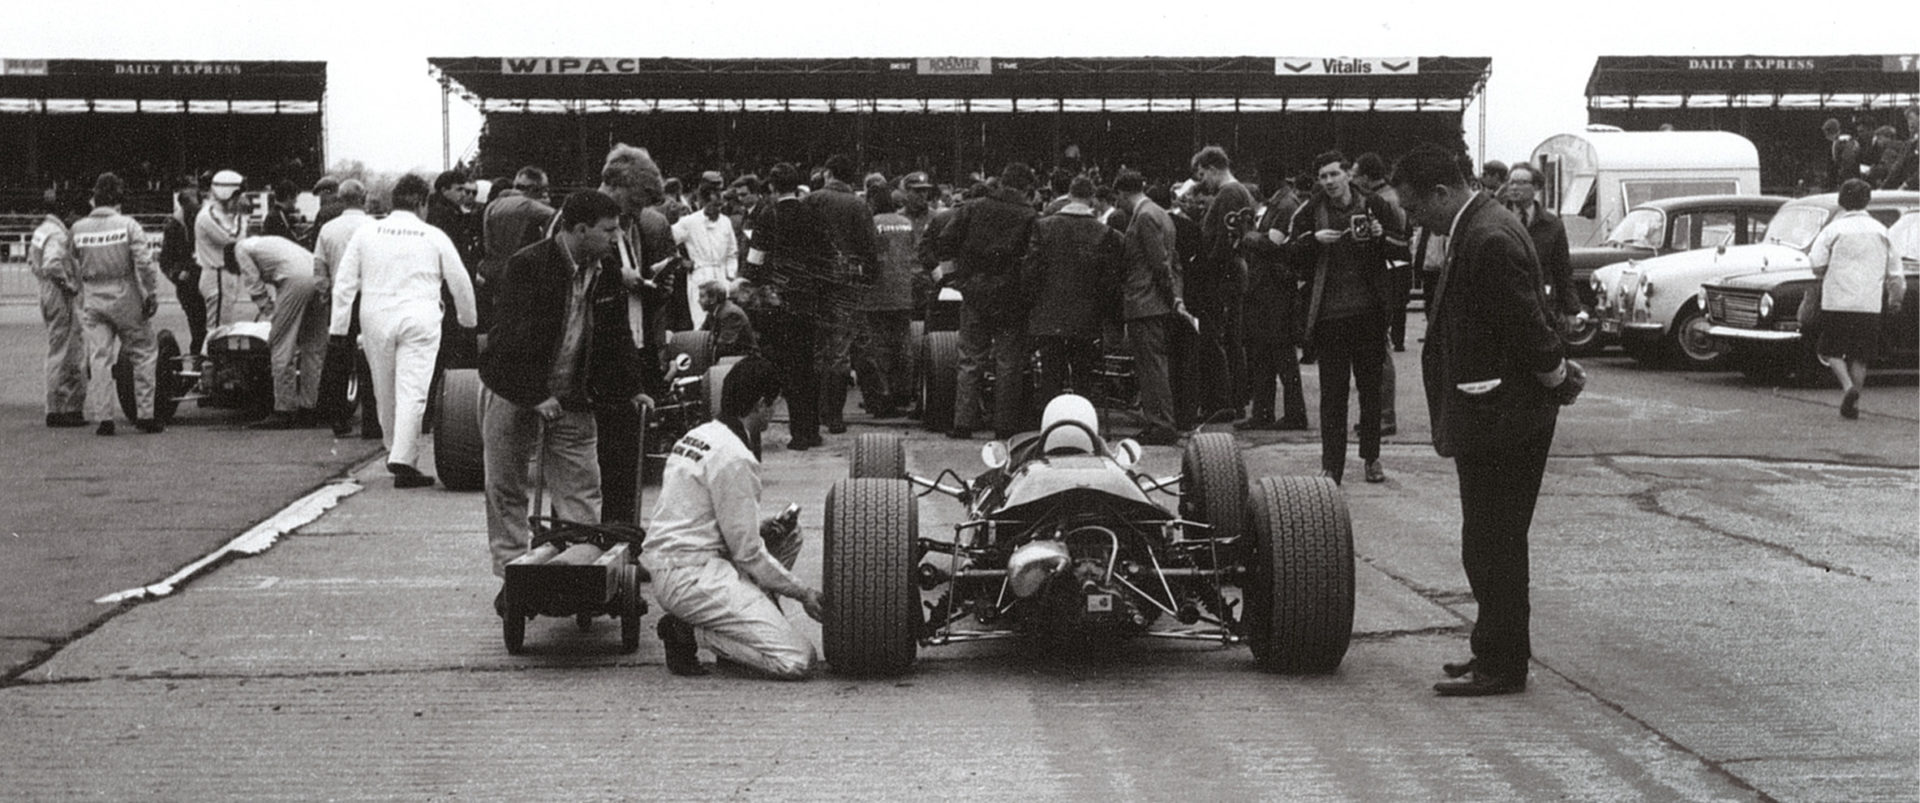 With racing luminaries like McLaren, Brabham, Siffert, Hill, Hulme and Ligier on the entry, there was no shortage of interest in the paddock